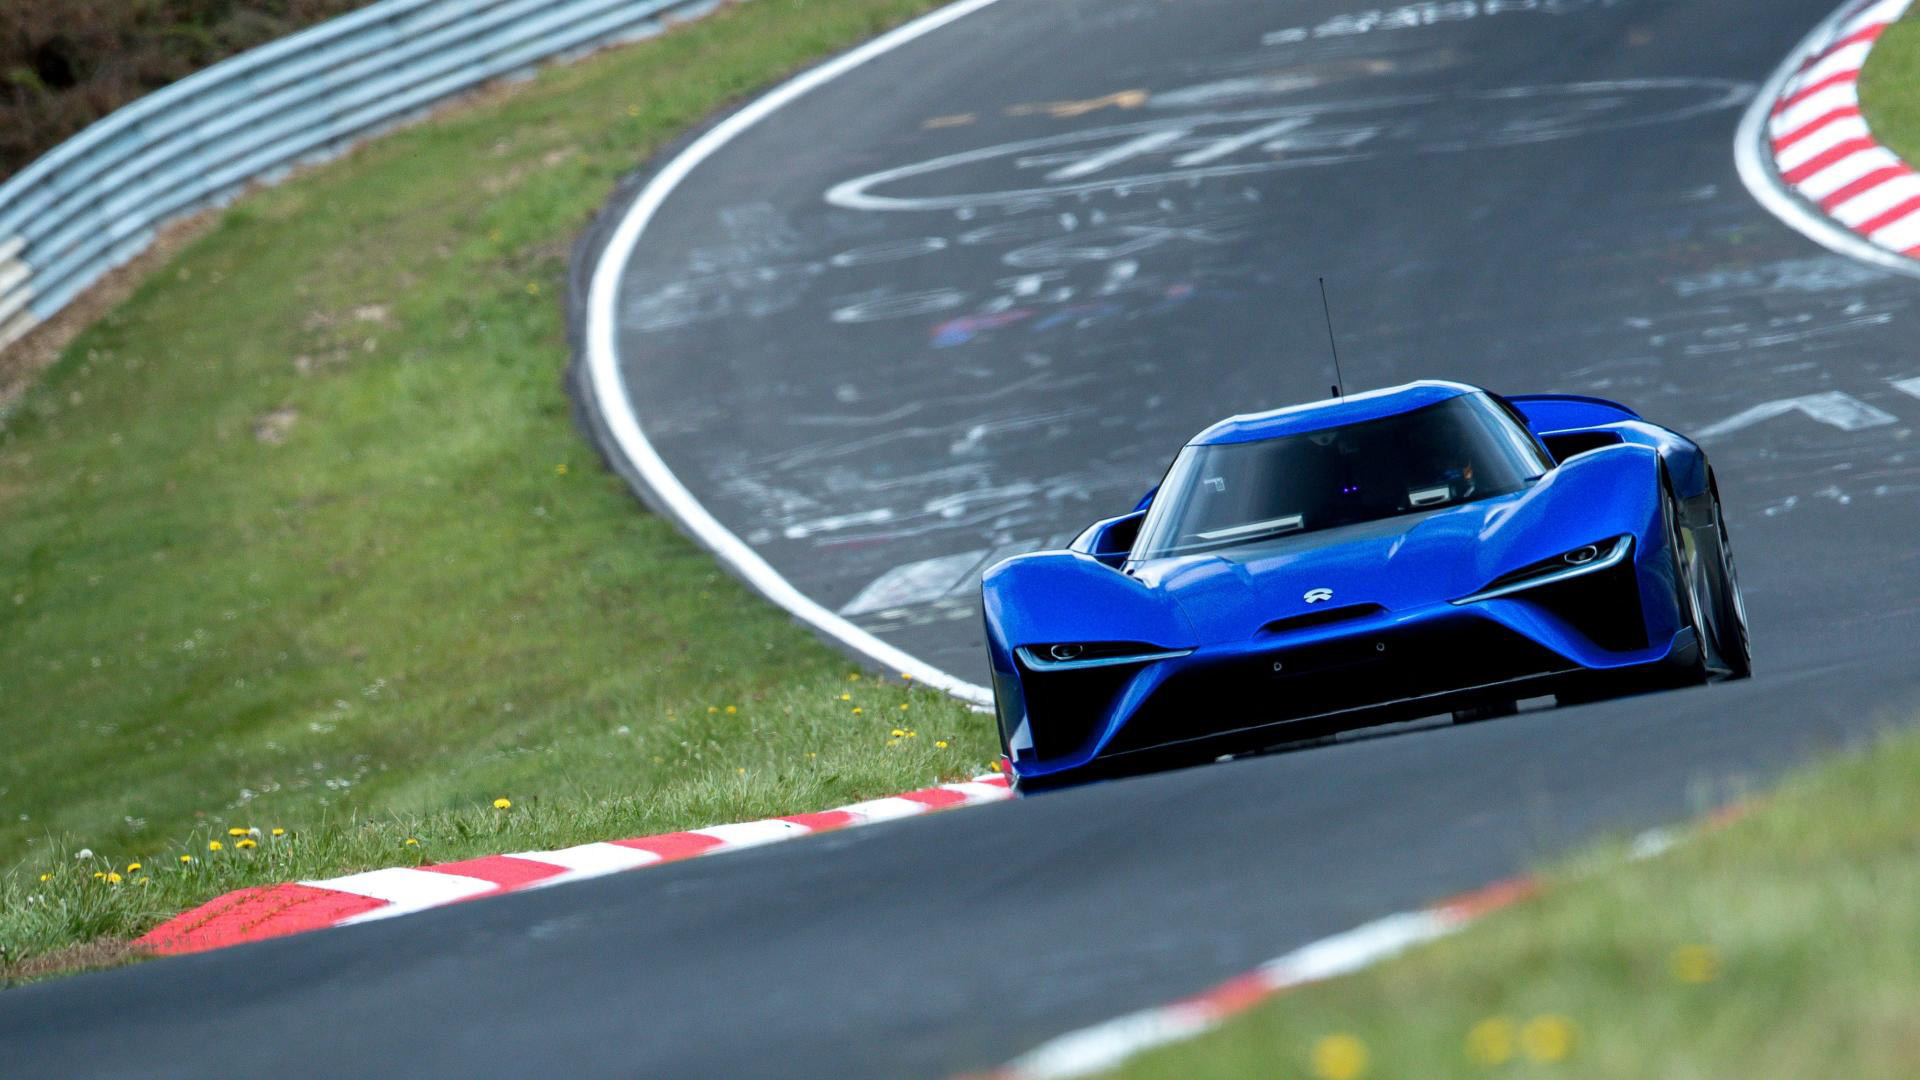 Nio EP9 clocks a 6:45.9 Nürburgring lap time on May 12, 2017